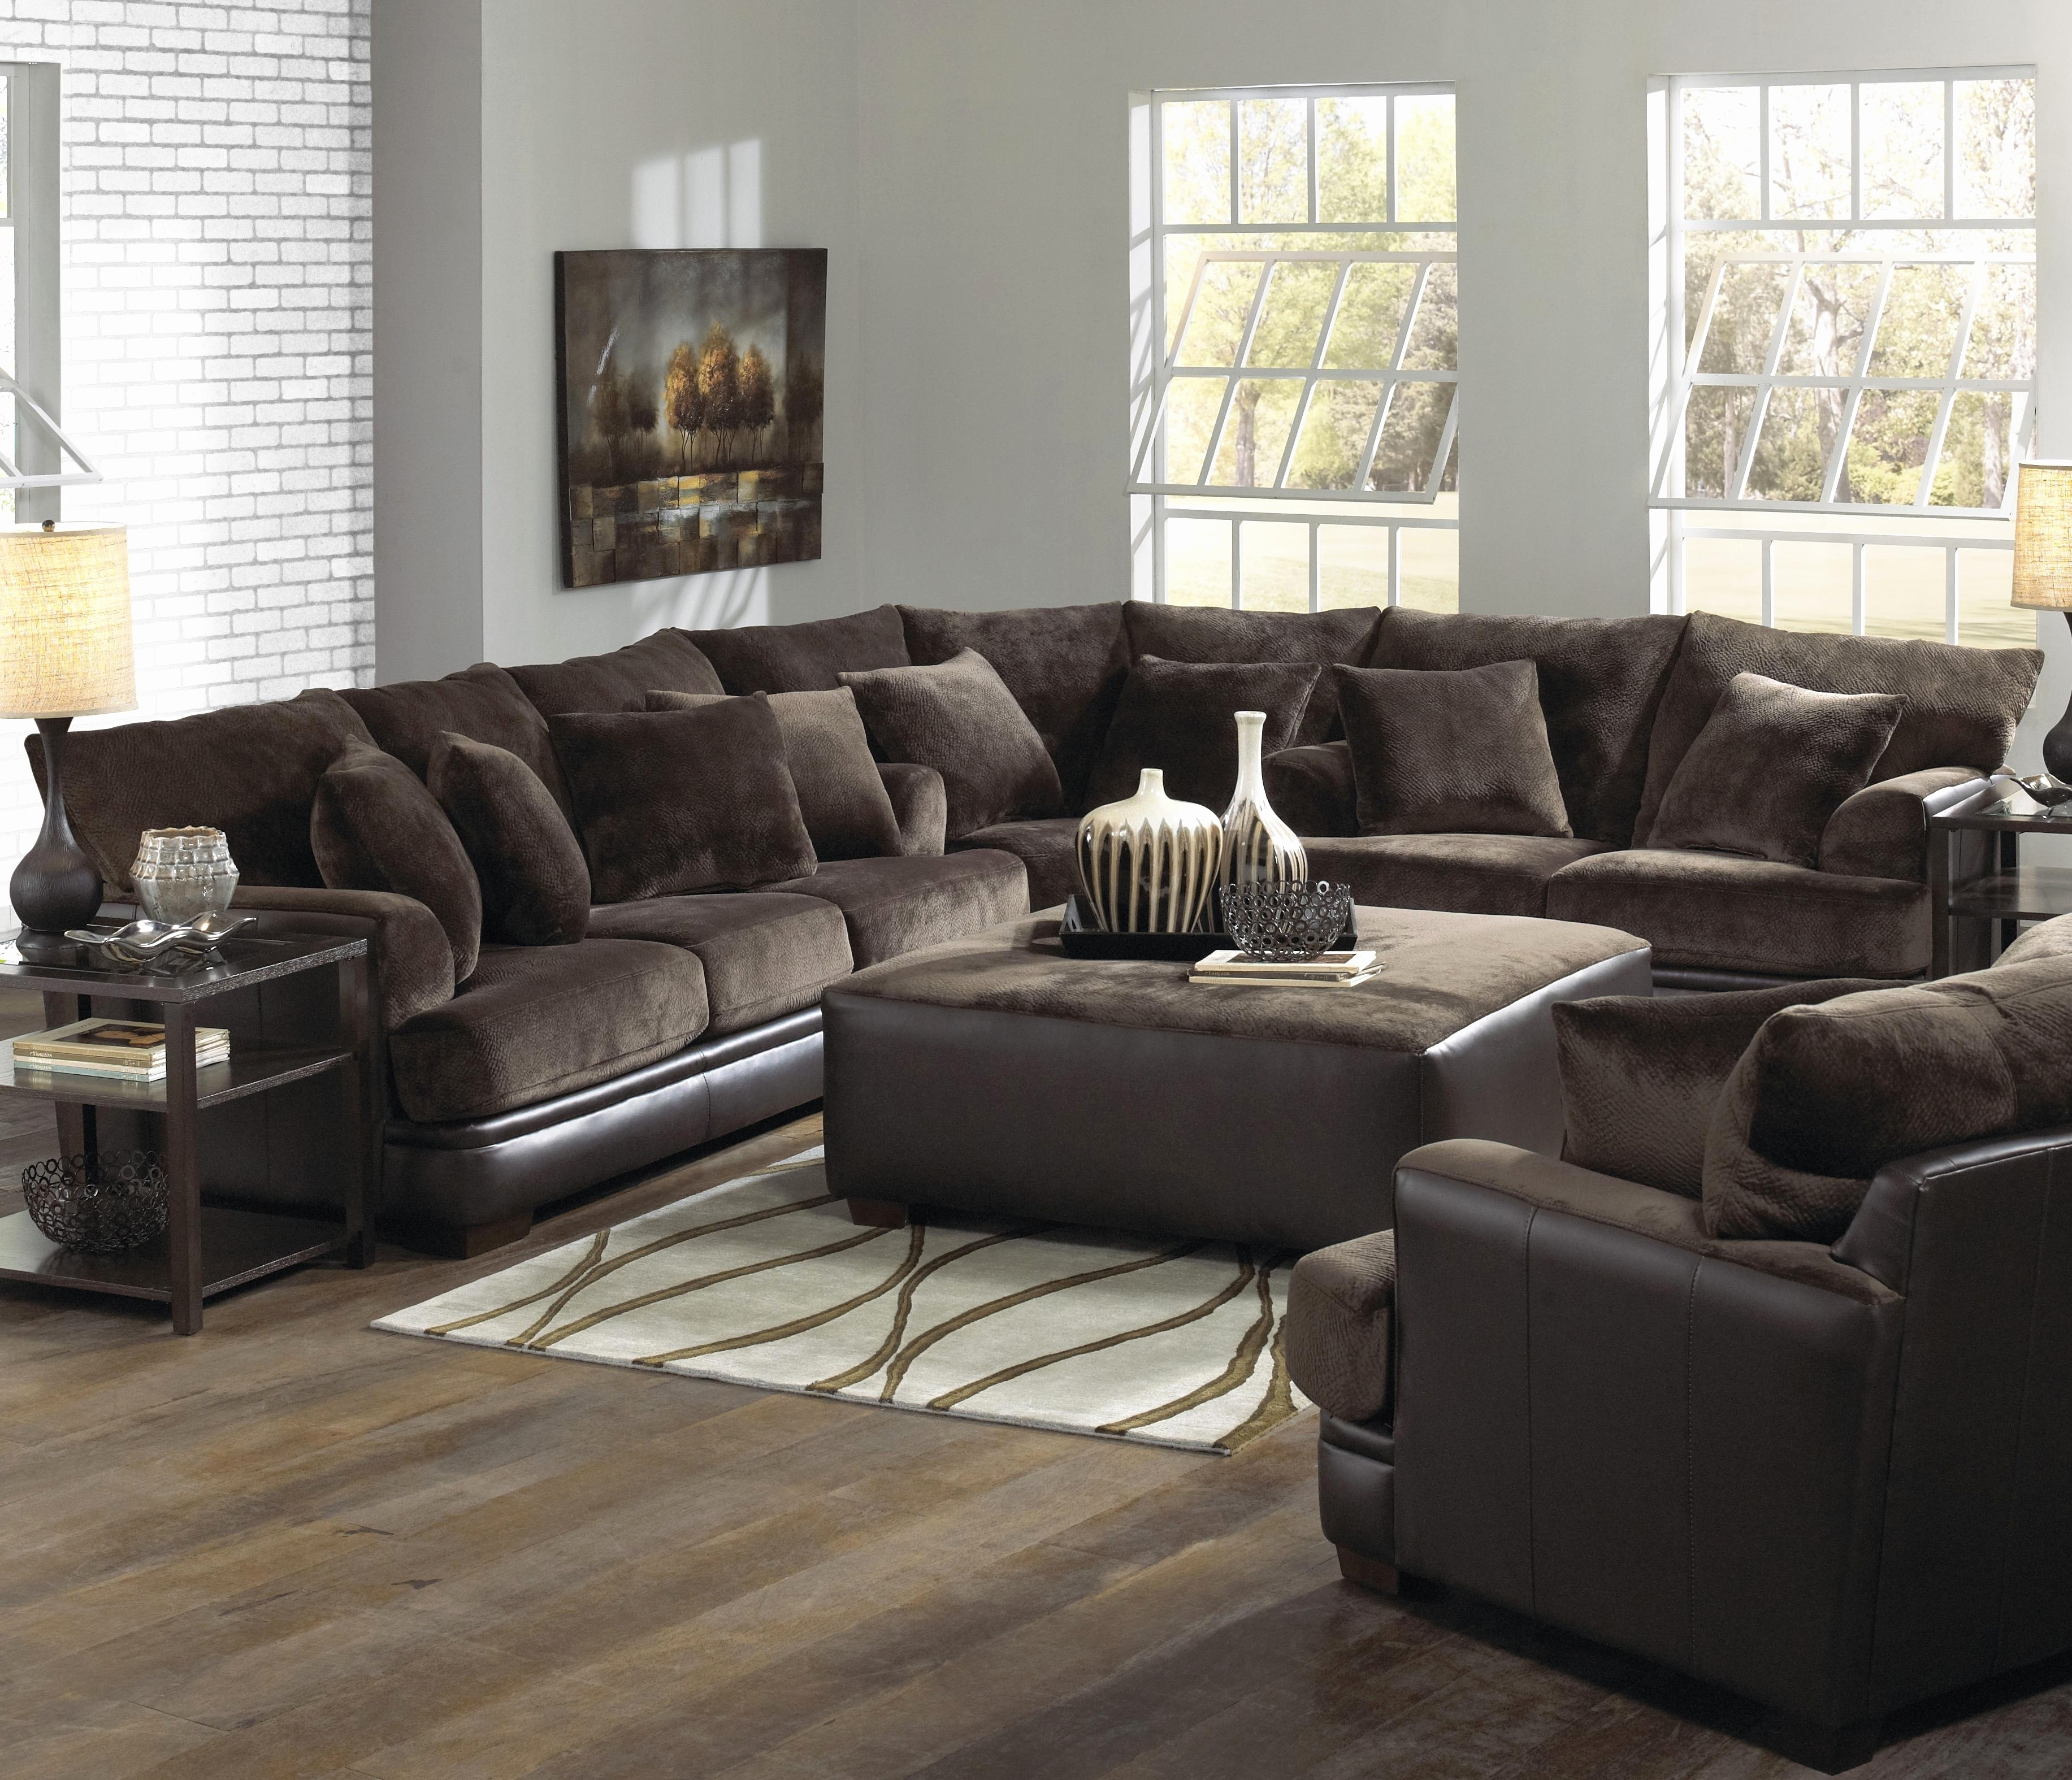 Big U Shaped Couches Within Trendy Unique Cheap U Shaped Couch 2018 – Couches And Sofas Ideas (View 5 of 15)